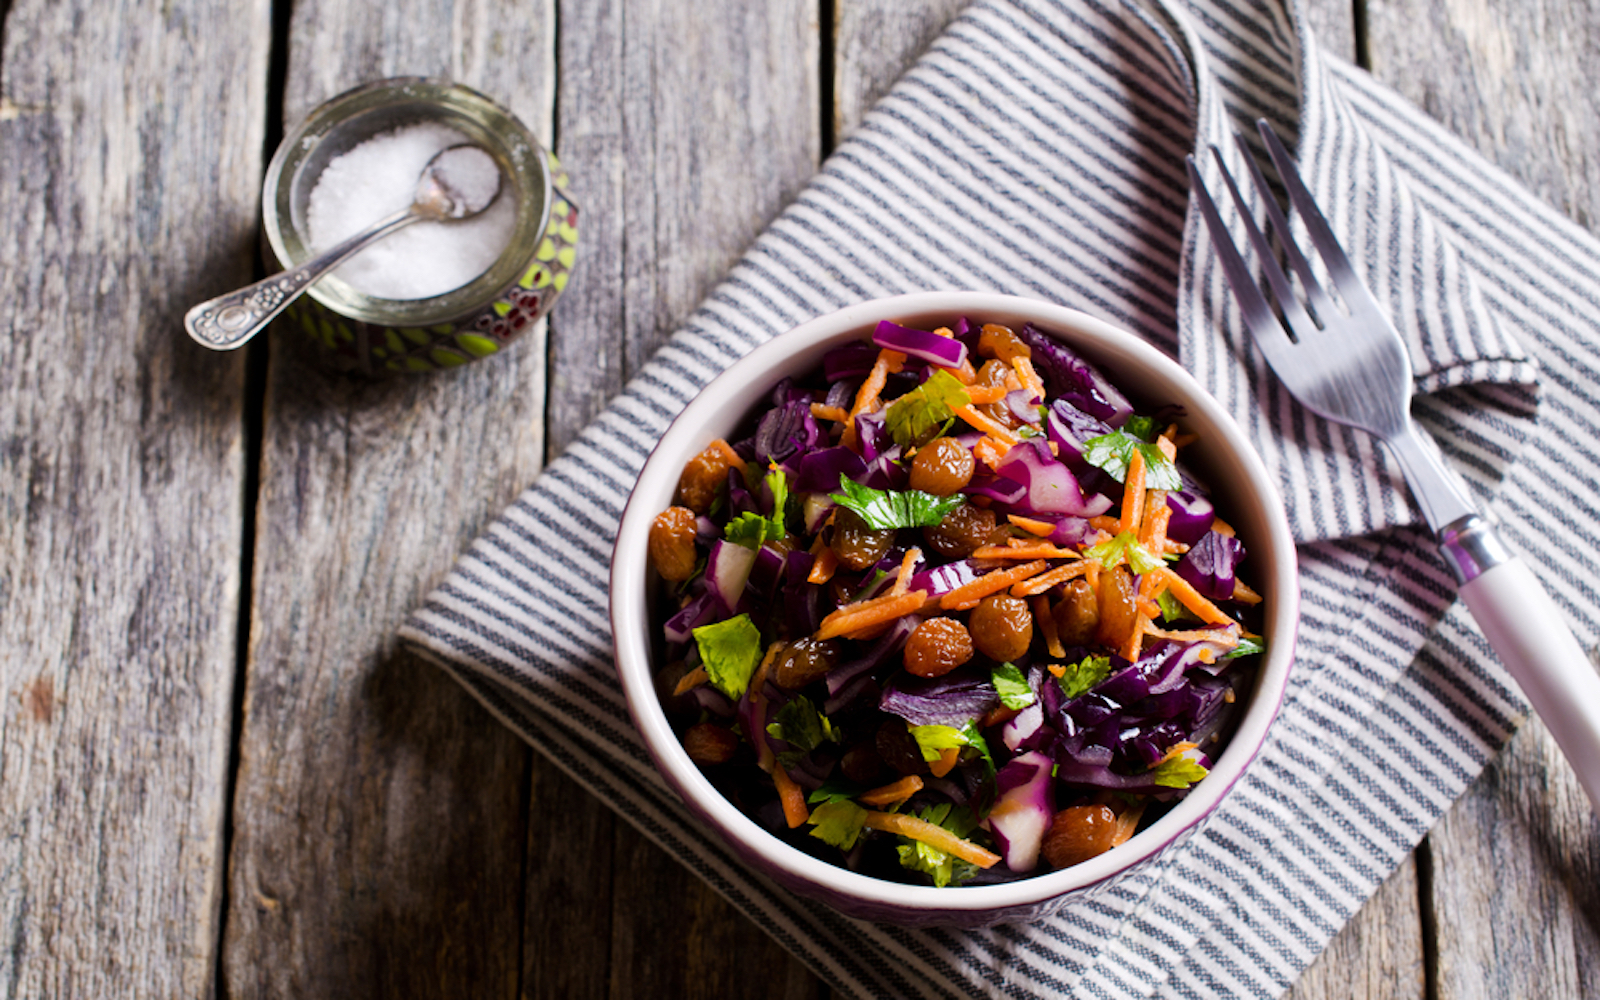 vegan coleslaw without dairy